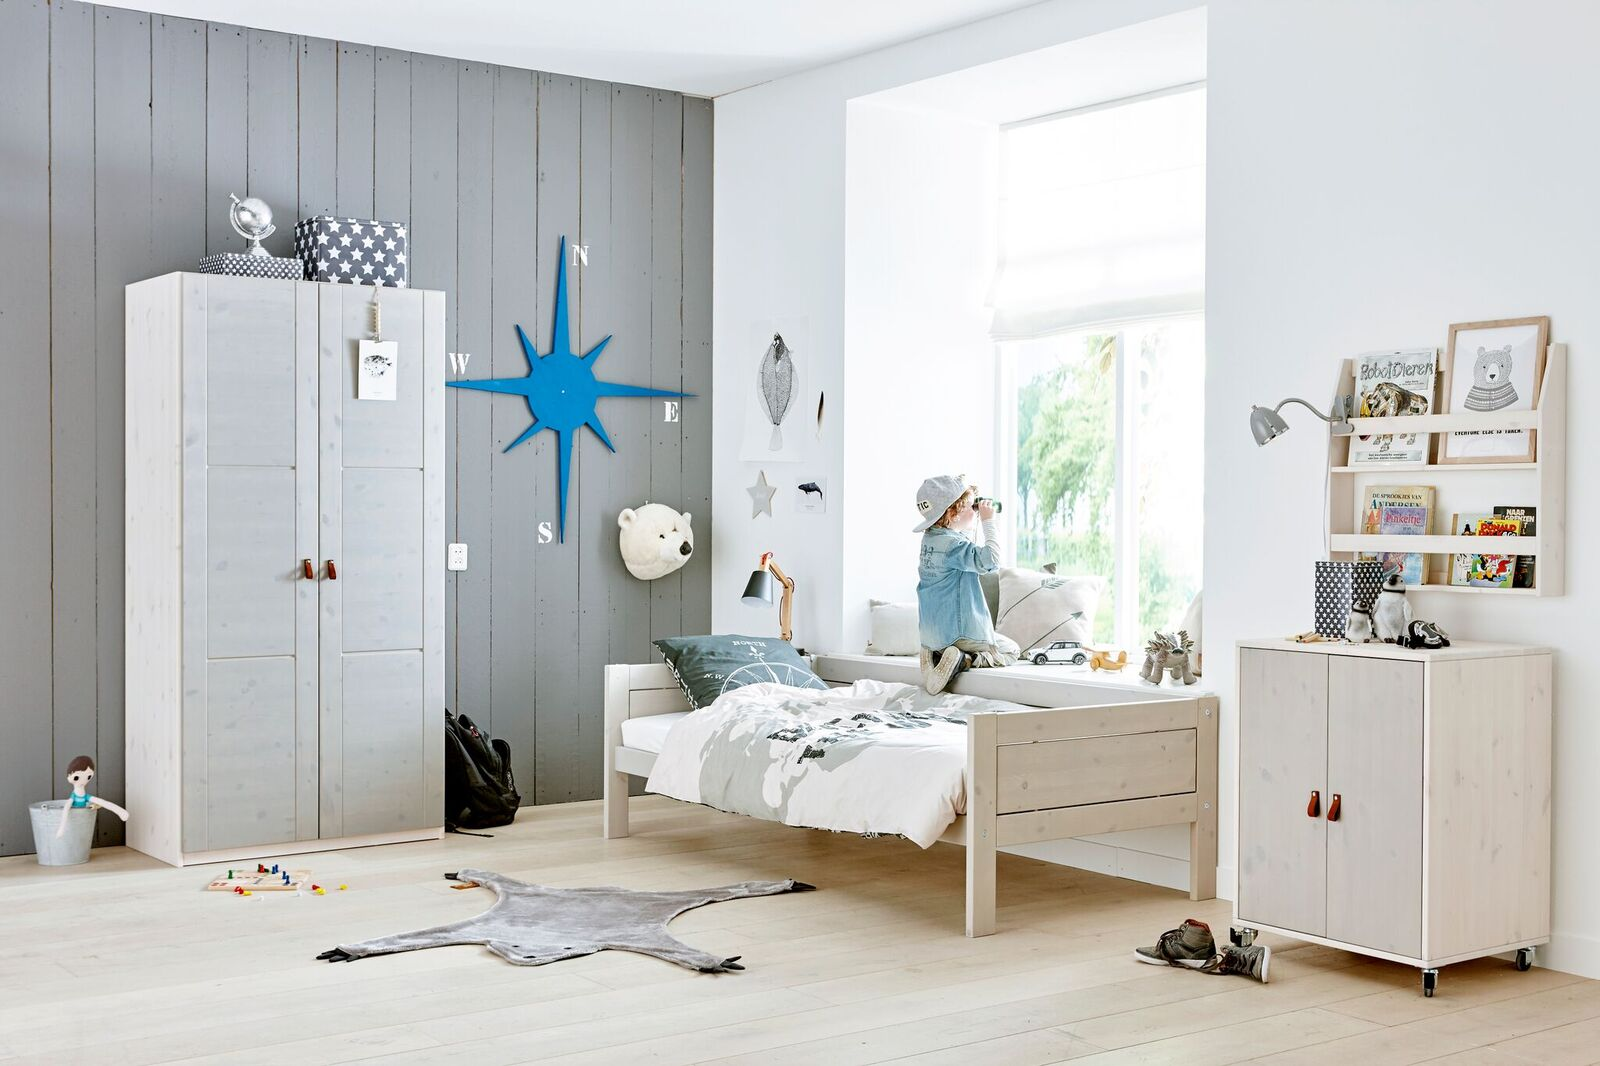 Oliver Furniture Etagenbett : Alle shop artikel betten kidsdesign kindermode kindermöbel